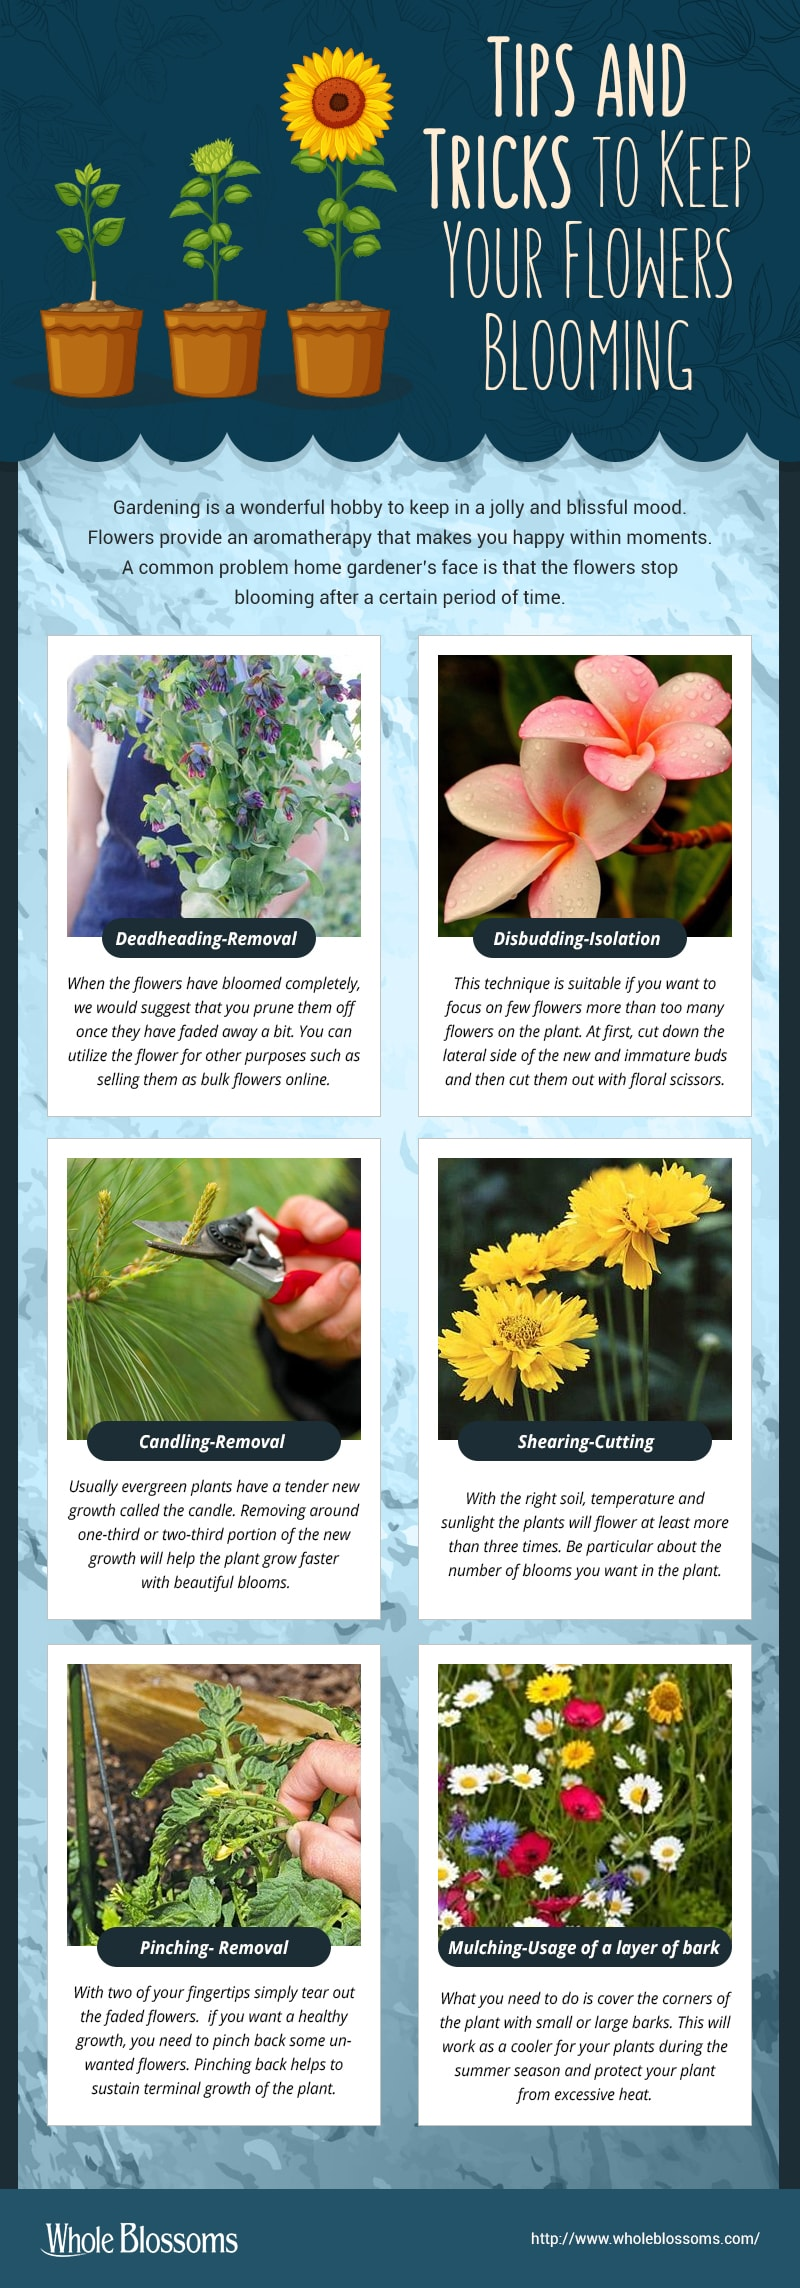 Tips & Tricks to Keep Your Flowers Blooming